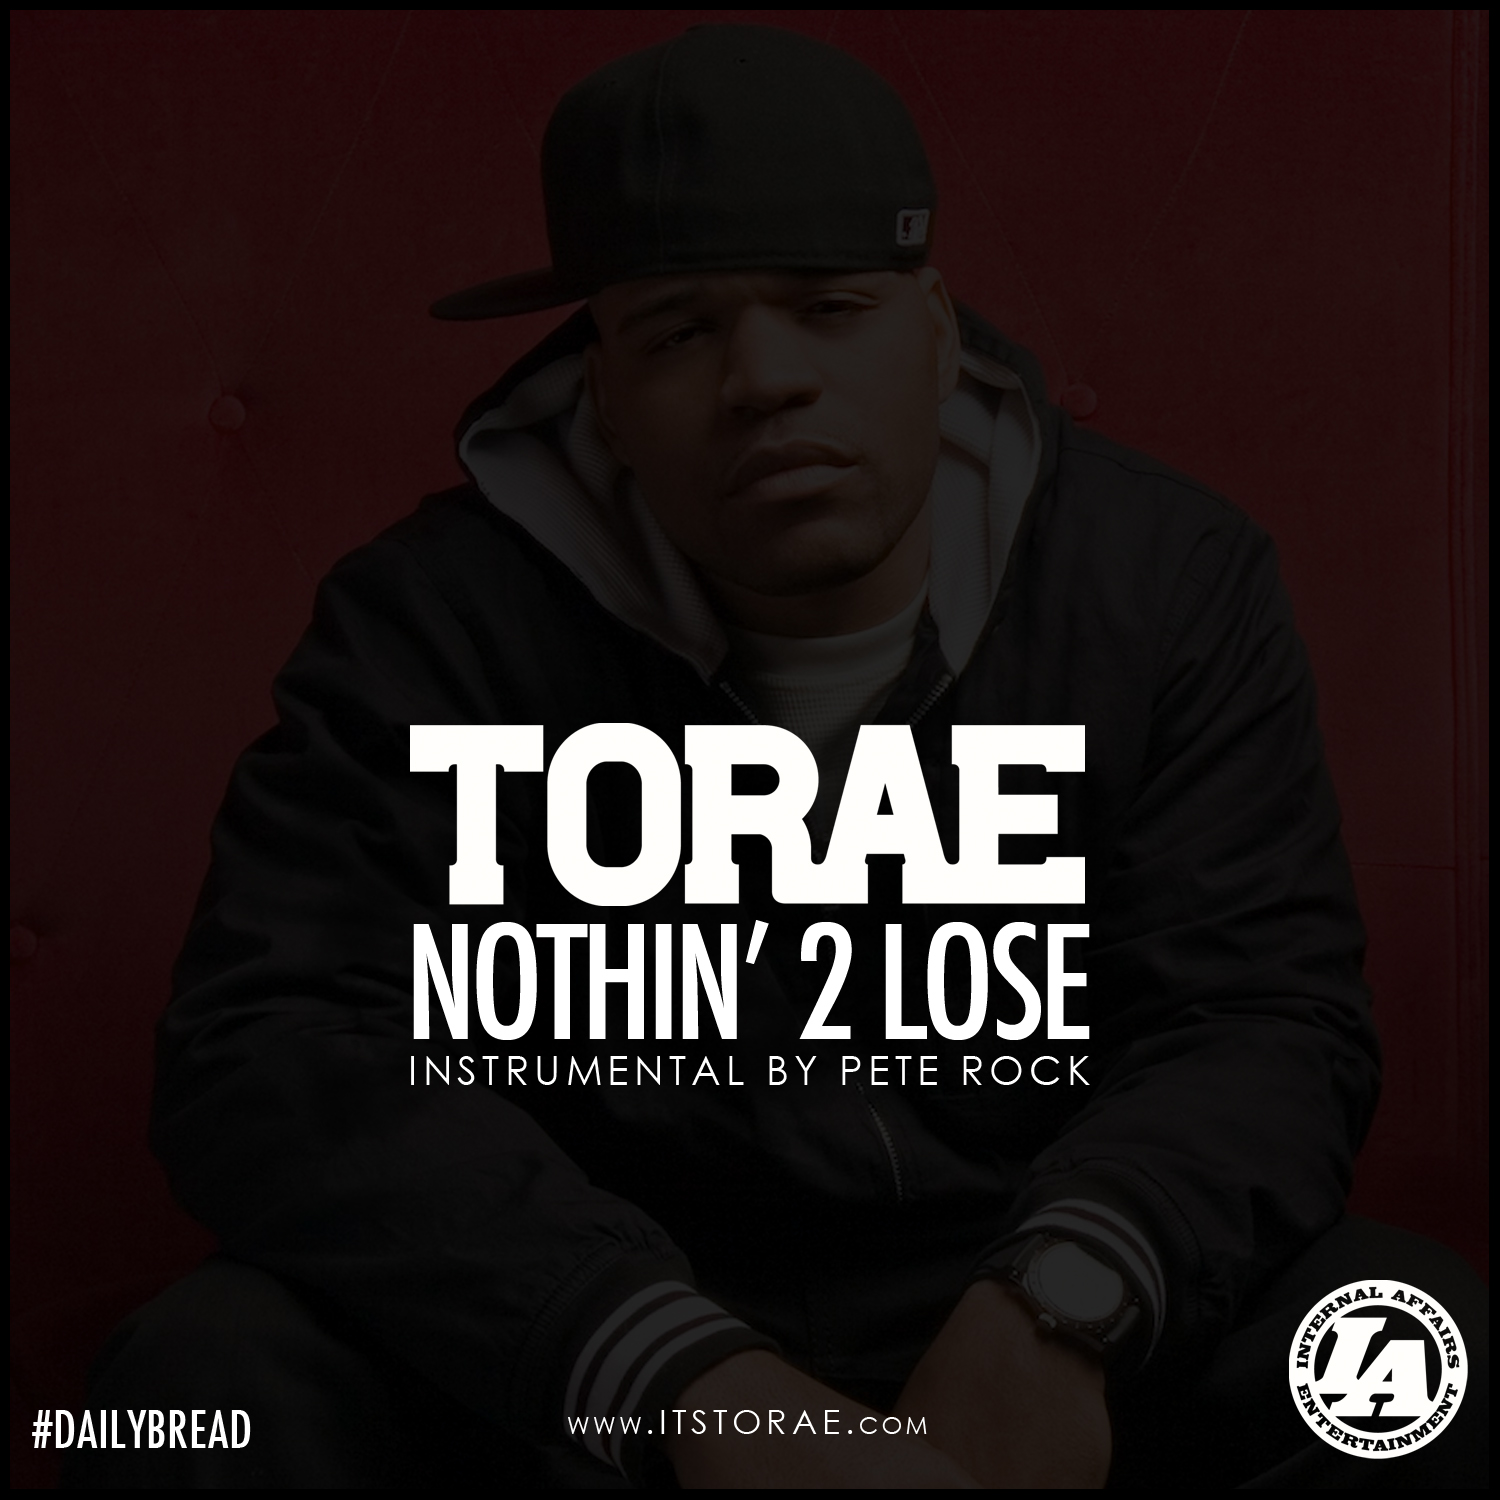 http://itstorae.files.wordpress.com/2012/10/torae_nothin2lose.jpg